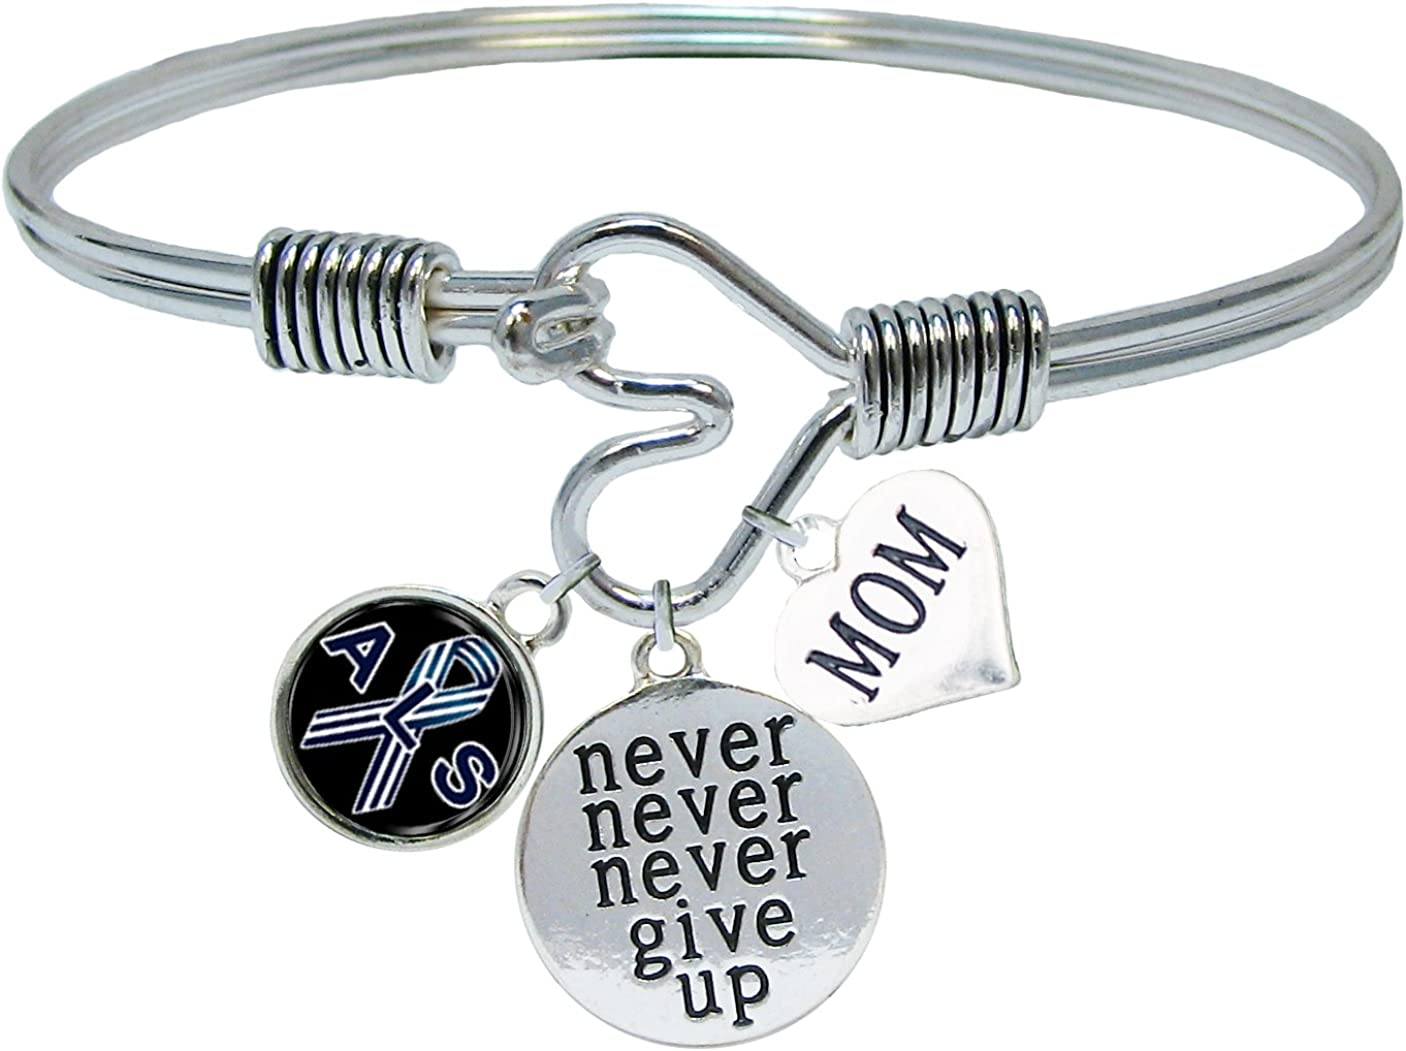 Sports Accessory Store ALS Lou Gehrig\'s Disease Awareness Never Give Up Choose MOM OR DAD Charm ONLY Bracelet Jewelry